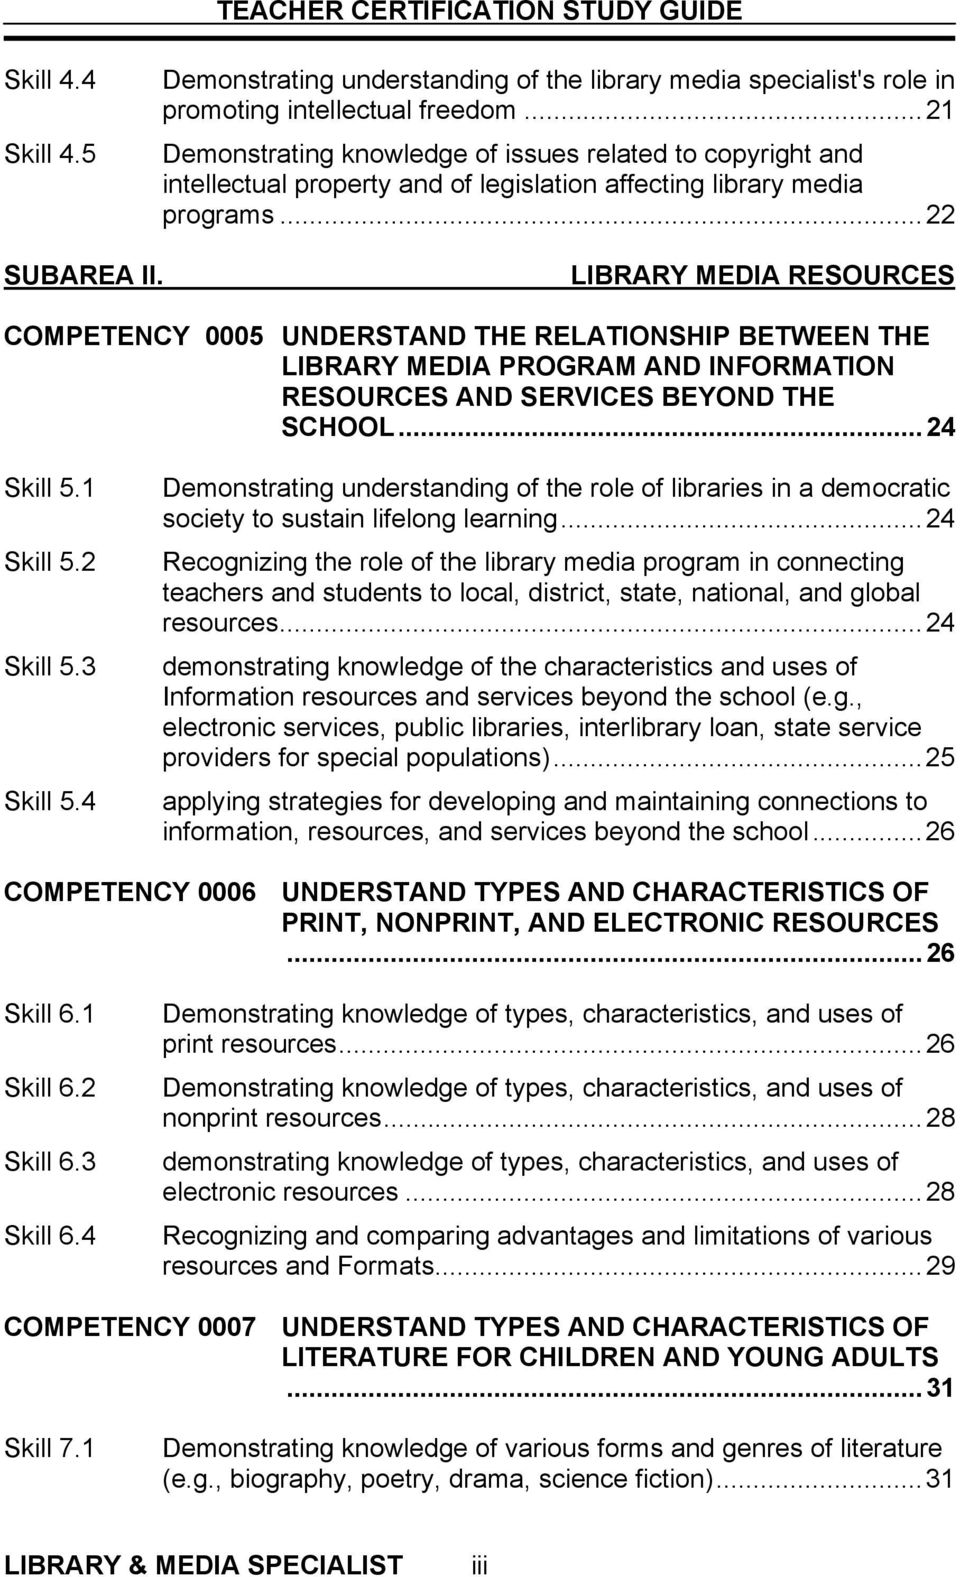 LIBRARY MEDIA RESOURCES COMPETENCY 0005 UNDERSTAND THE RELATIONSHIP BETWEEN THE LIBRARY MEDIA PROGRAM AND INFORMATION RESOURCES AND SERVICES BEYOND THE SCHOOL...24 Skill 5.1 Skill 5.2 Skill 5.